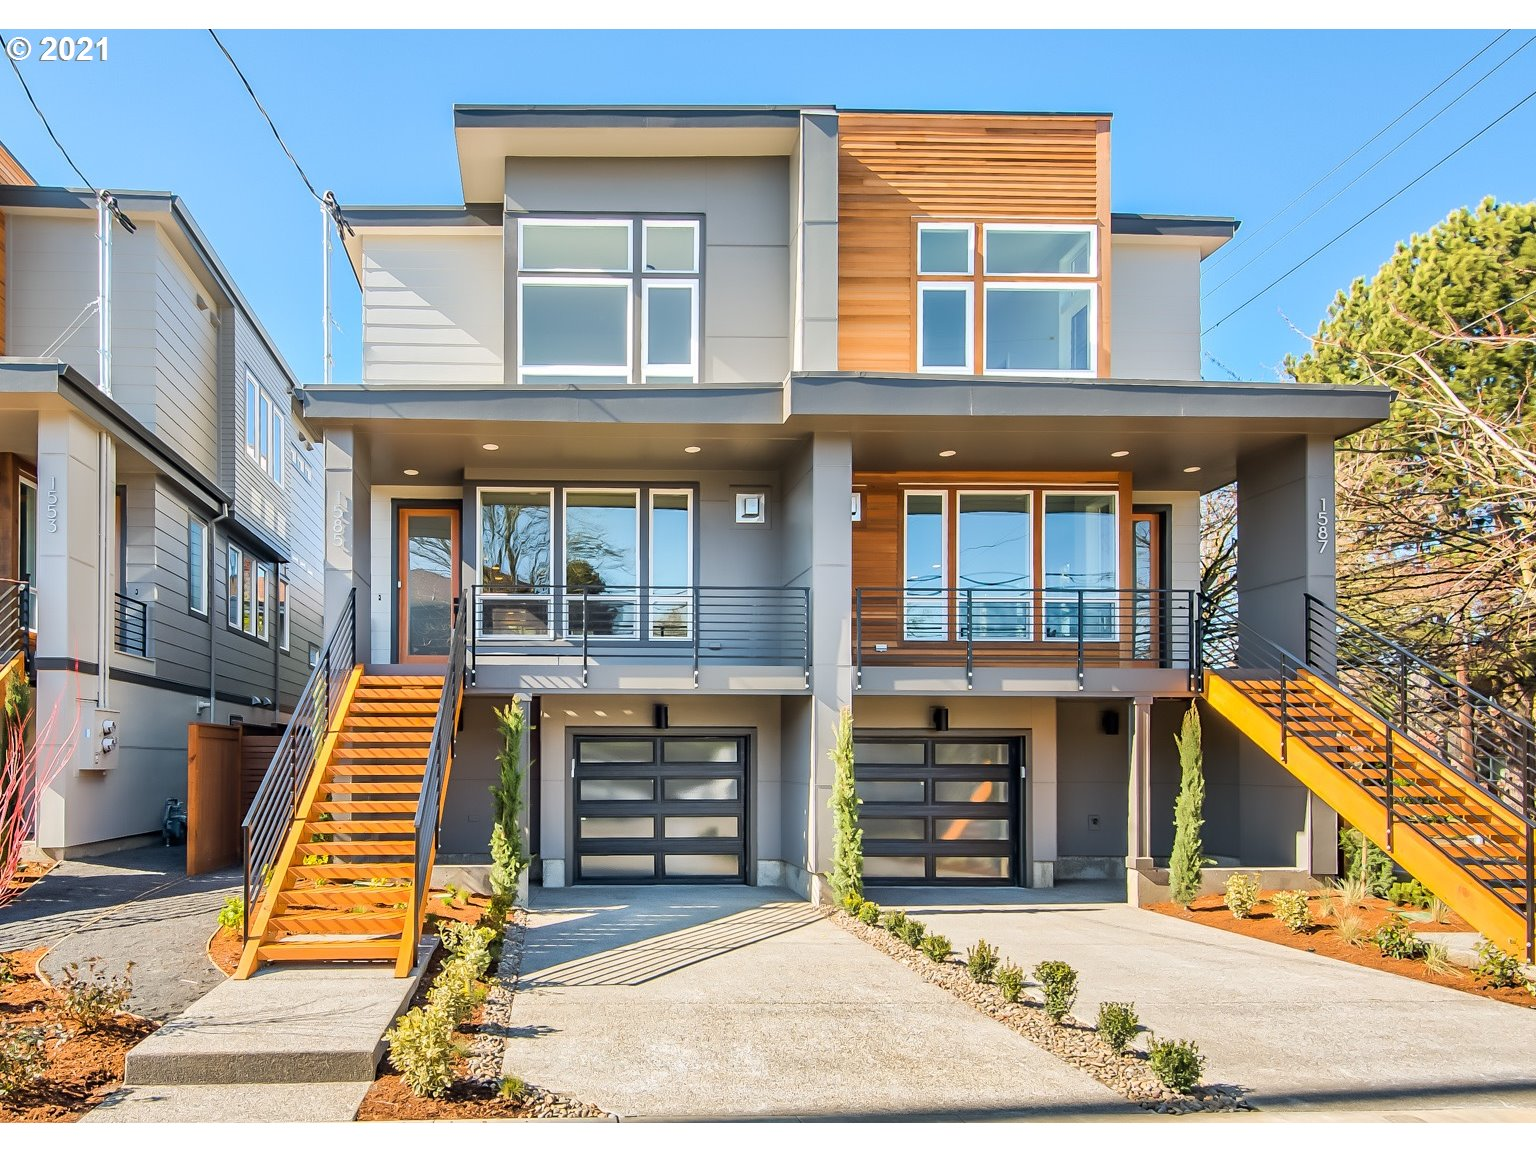 Beautiful New Modern Luxury Home by Everett in the heart of the Alberta Arts District! Certified Earth Advantage home w/ all of the modern conveniences. Master suite w/ a double sink, tiled shower, walk-in closet. Luxury finishes, custom built-ins, hardwood floors, slab waterfall countertops & stainless appliances. Open floor plan. Sustainable, energy efficient & quality craftsmanship. Great location! Walk to parks, restaurants & shops!